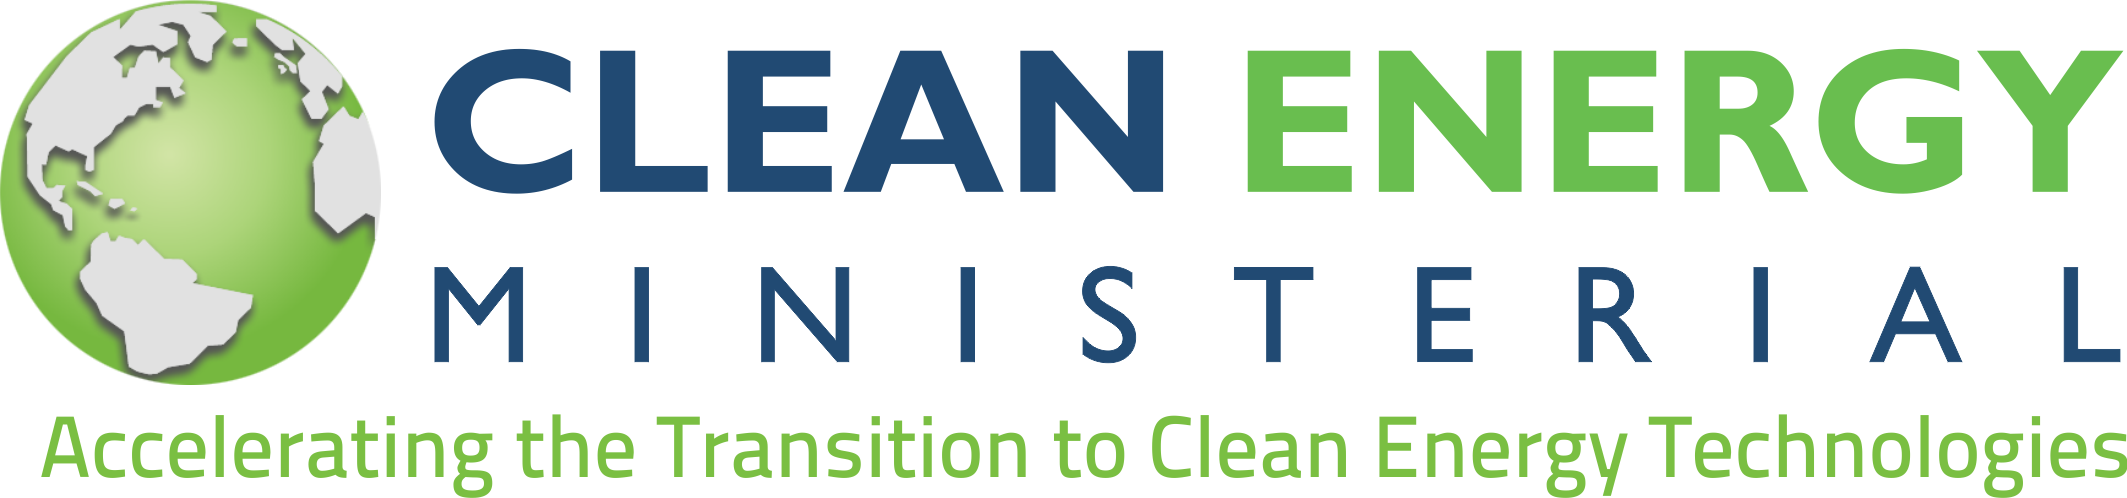 CEM clean energy ministerial logo.png